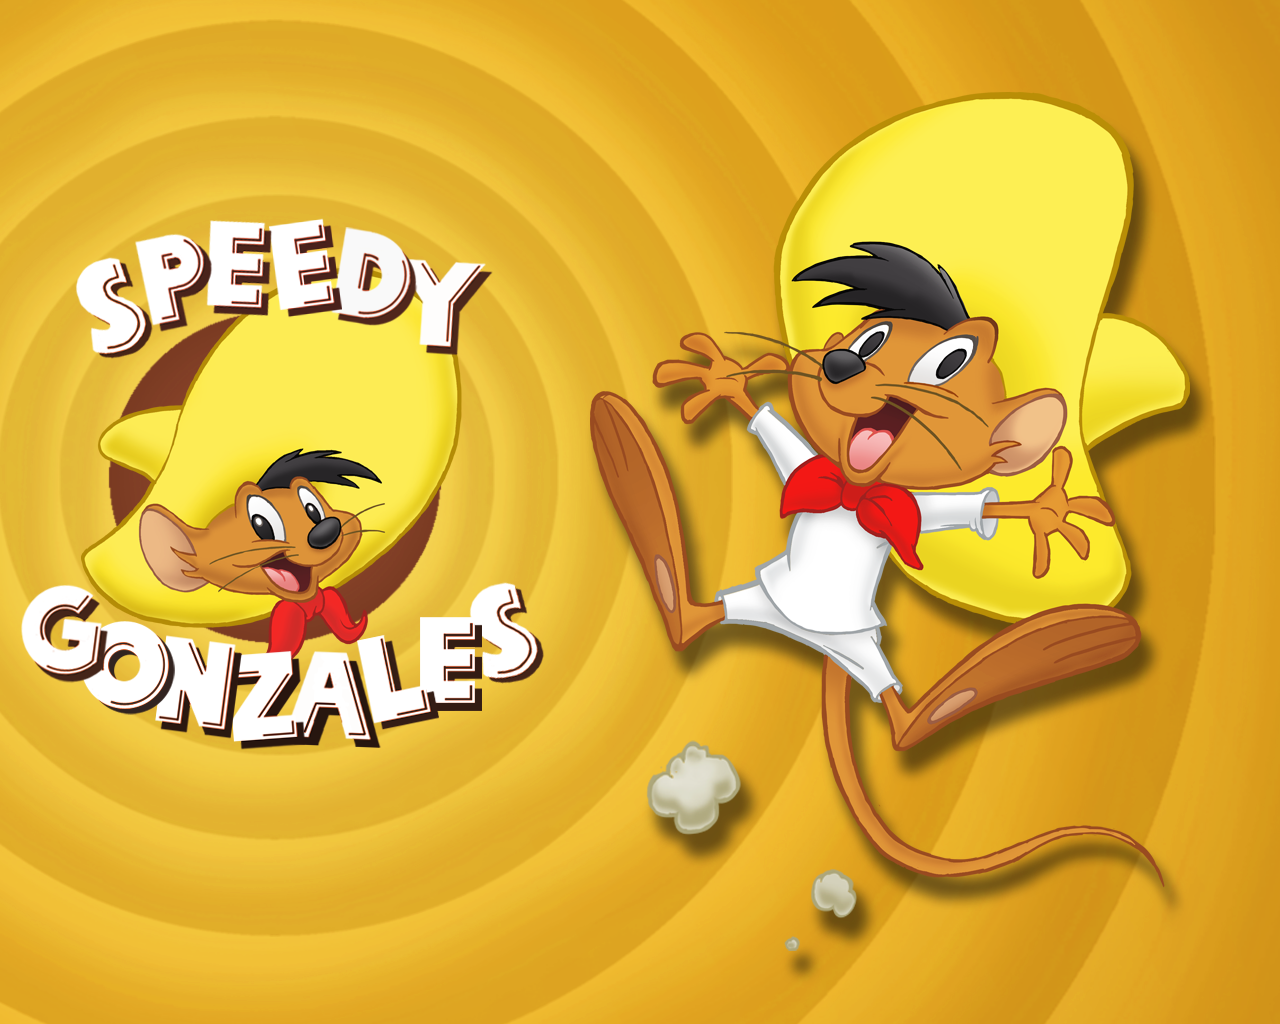 Cartoon Character Wallpaper Speedy Gonzales Cartoon Characters 1280x1024